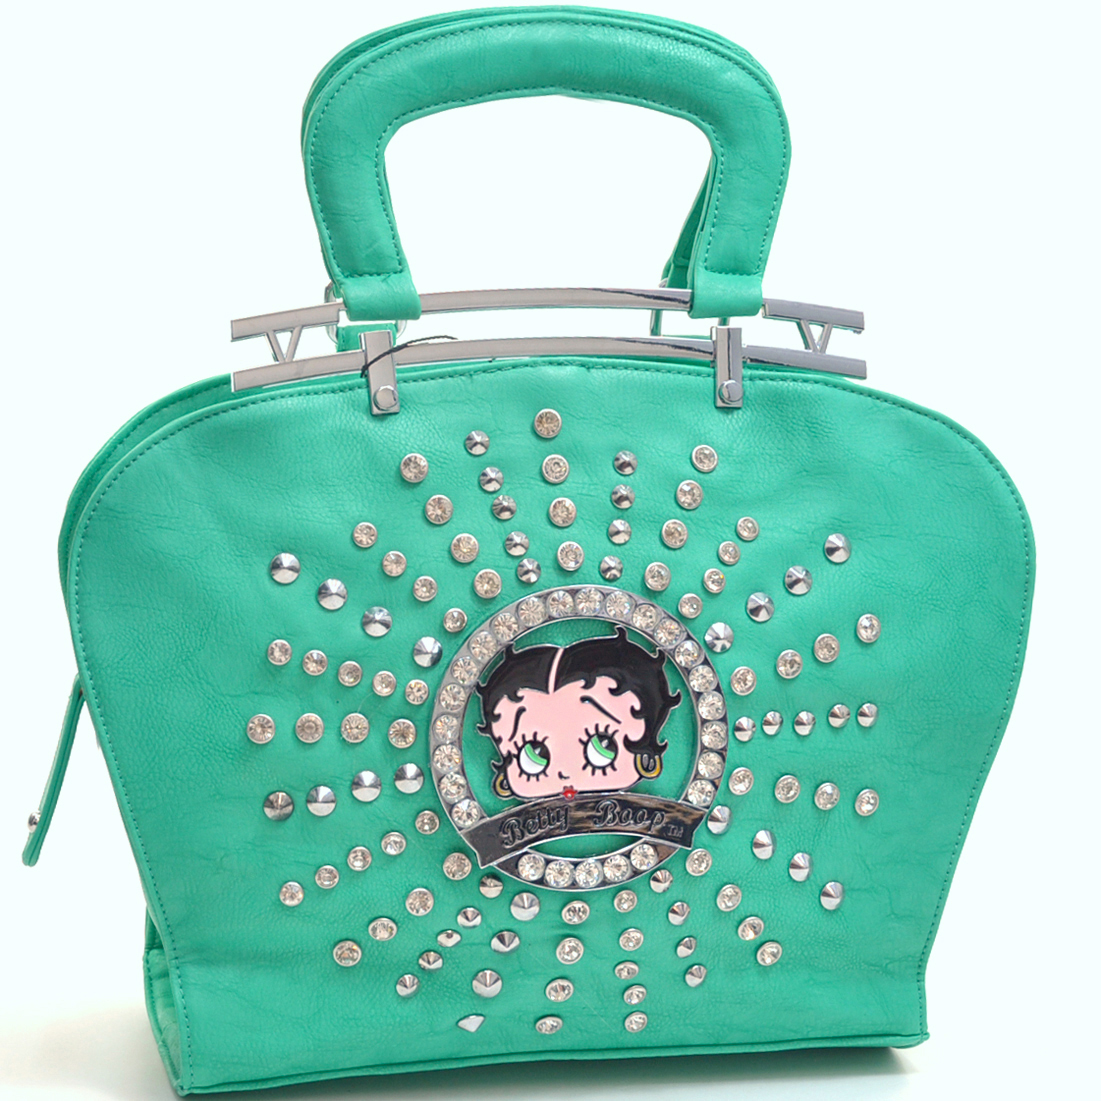 Rhinestone and Studs Betty Boop Shoulder Bag Flat Bottom Design with Removable Adjustable Shoulder Strap